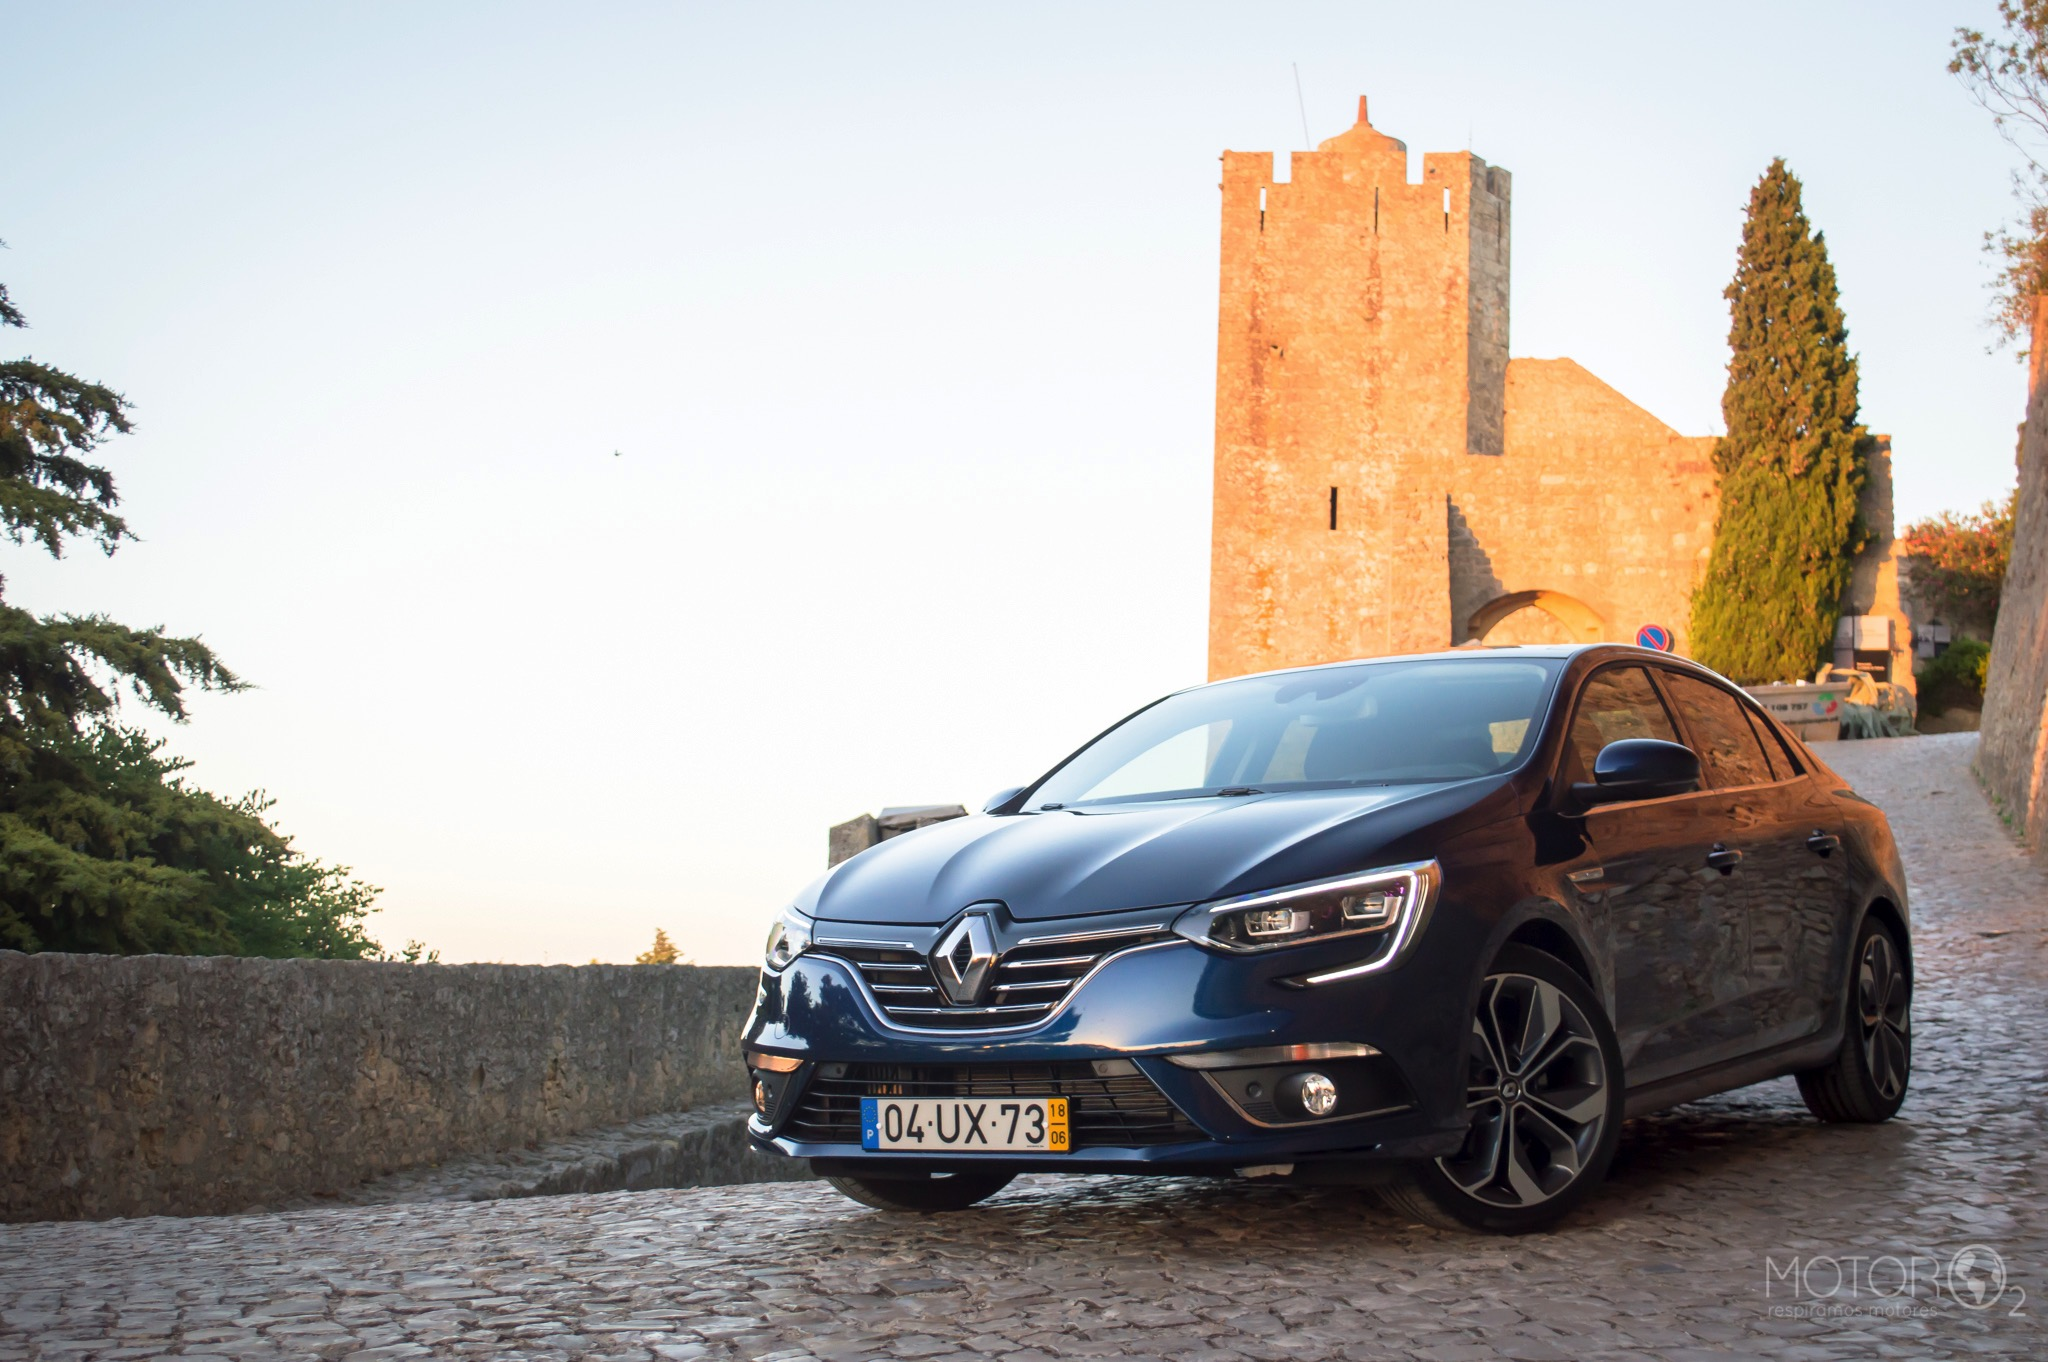 Renault Megane Grand Coupe 1.6 dCi 130